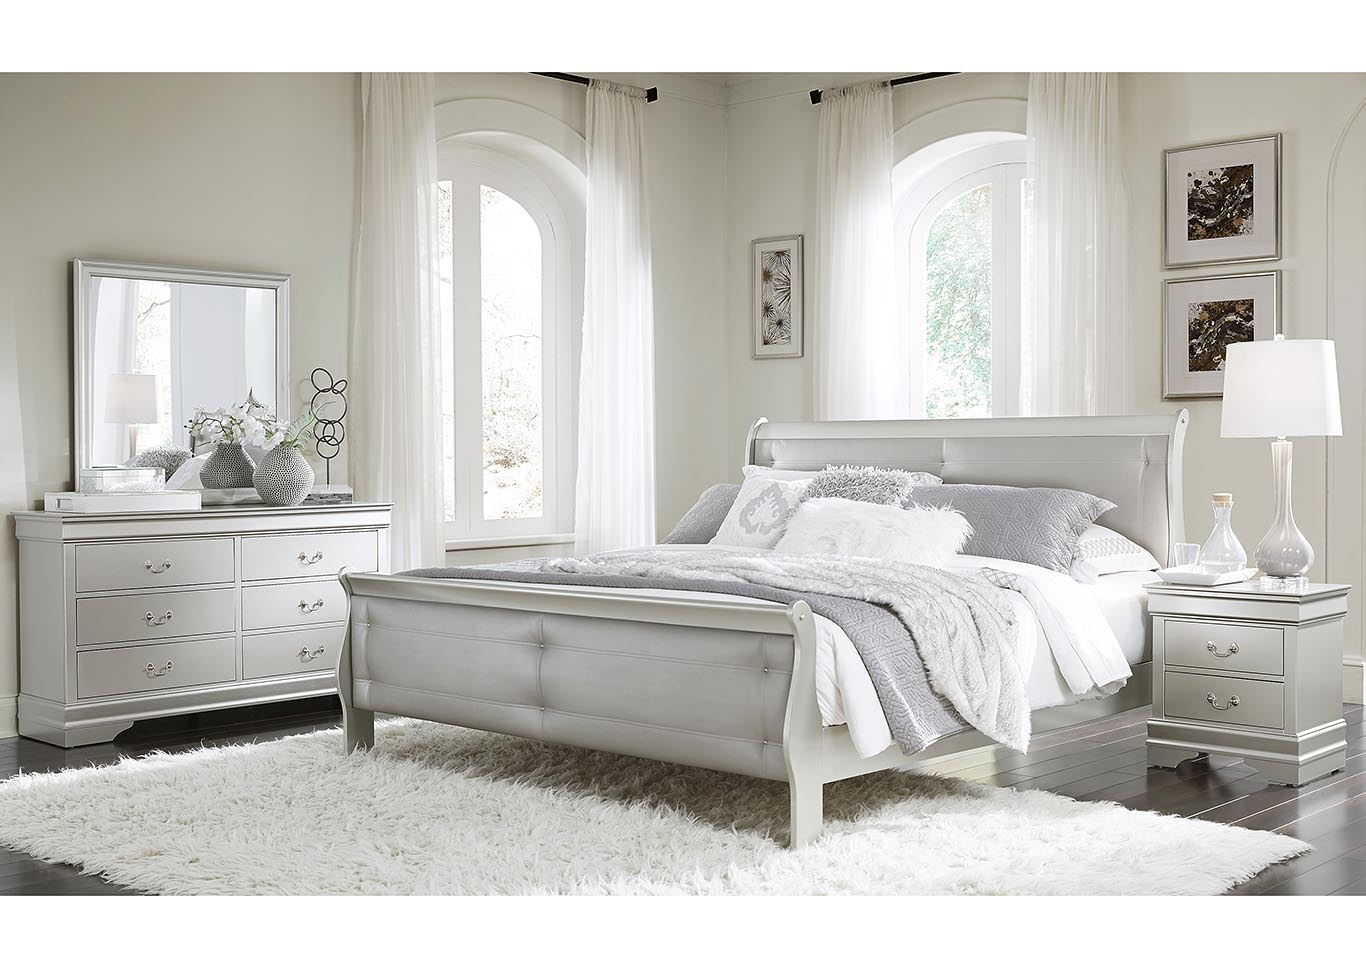 Marley Silver Queen Upholstery Panel Bed w/Dresser and Mirror,Global Furniture USA